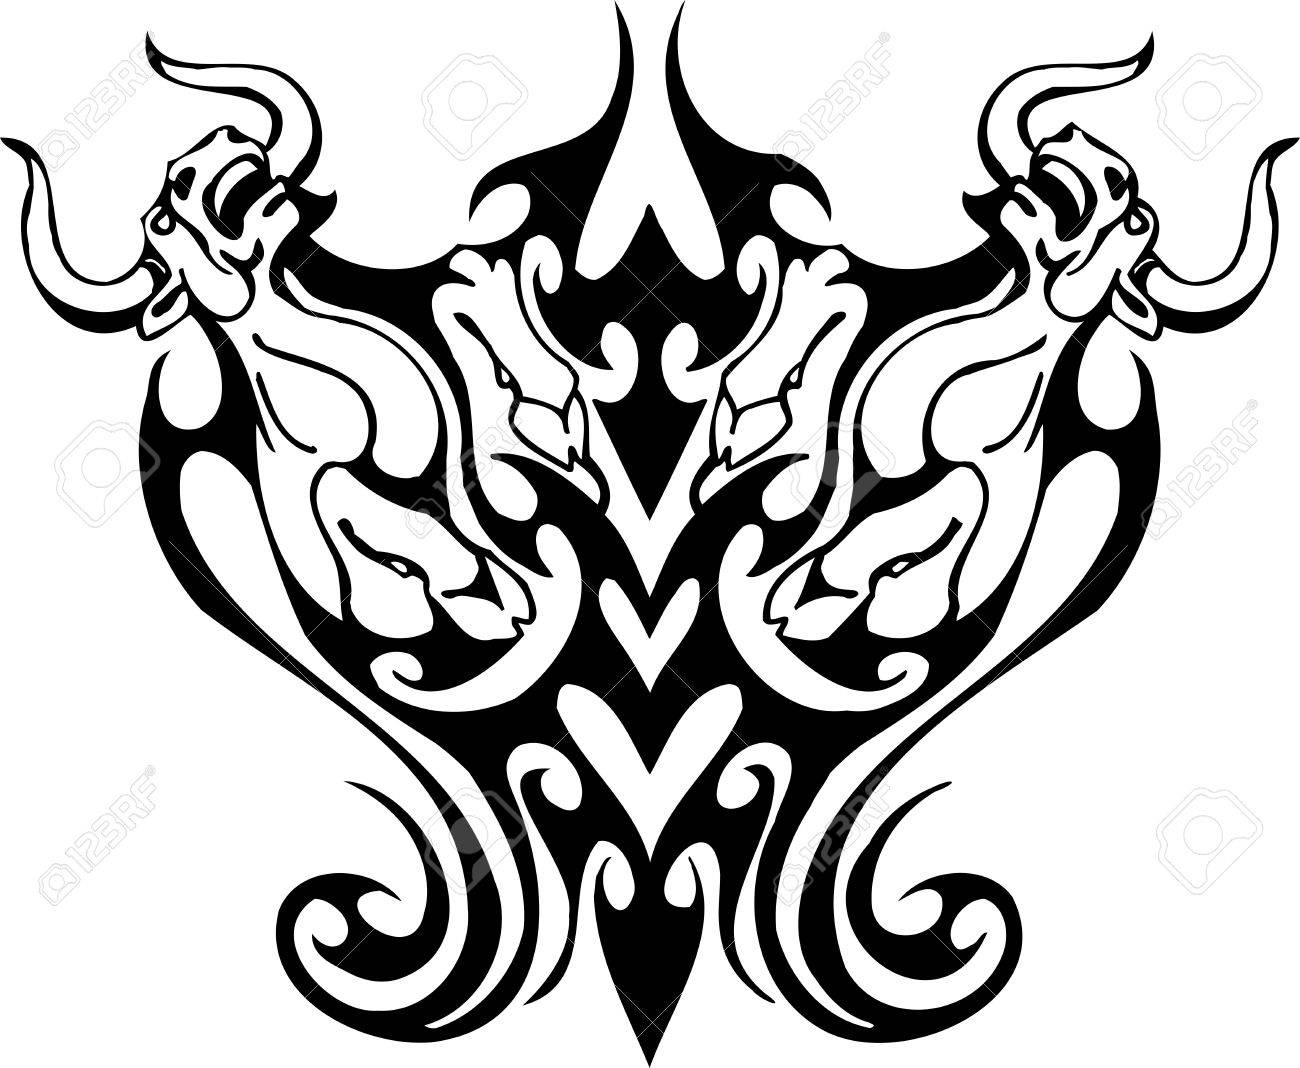 Bull in tribal style - vector image. Stock Vector - 12490475